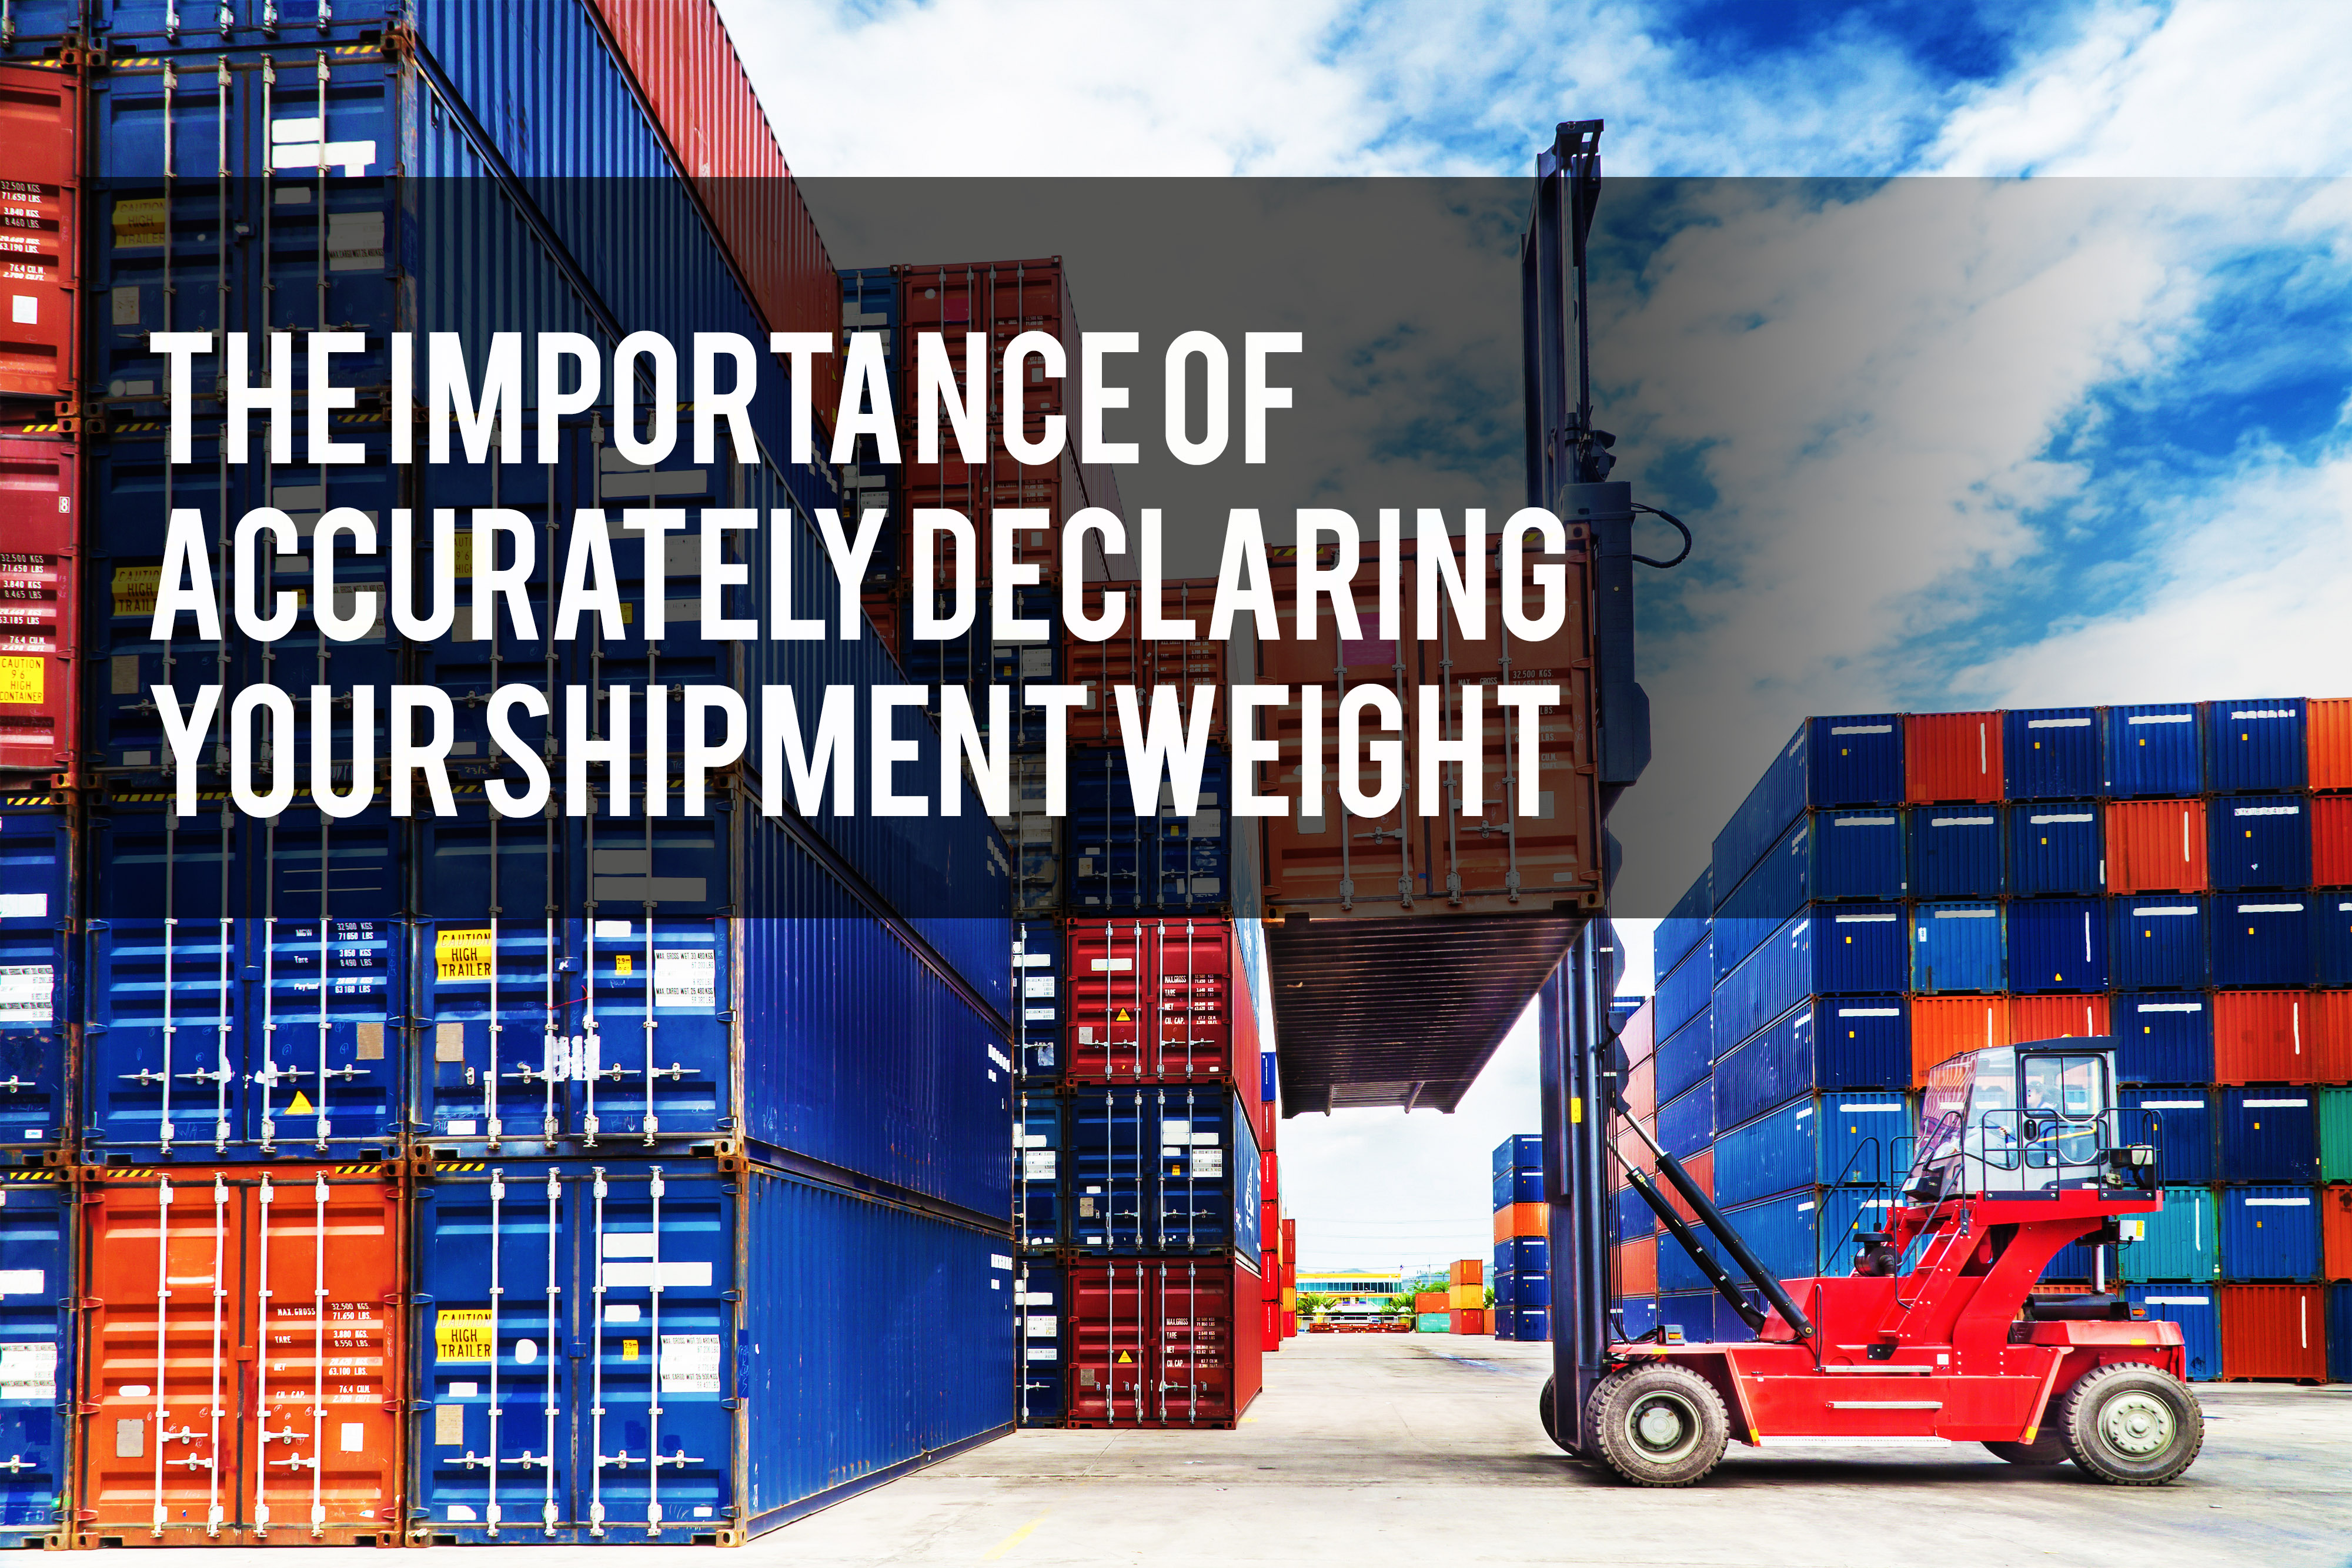 The Importance of Accurately Declaring Your Shipment Weight